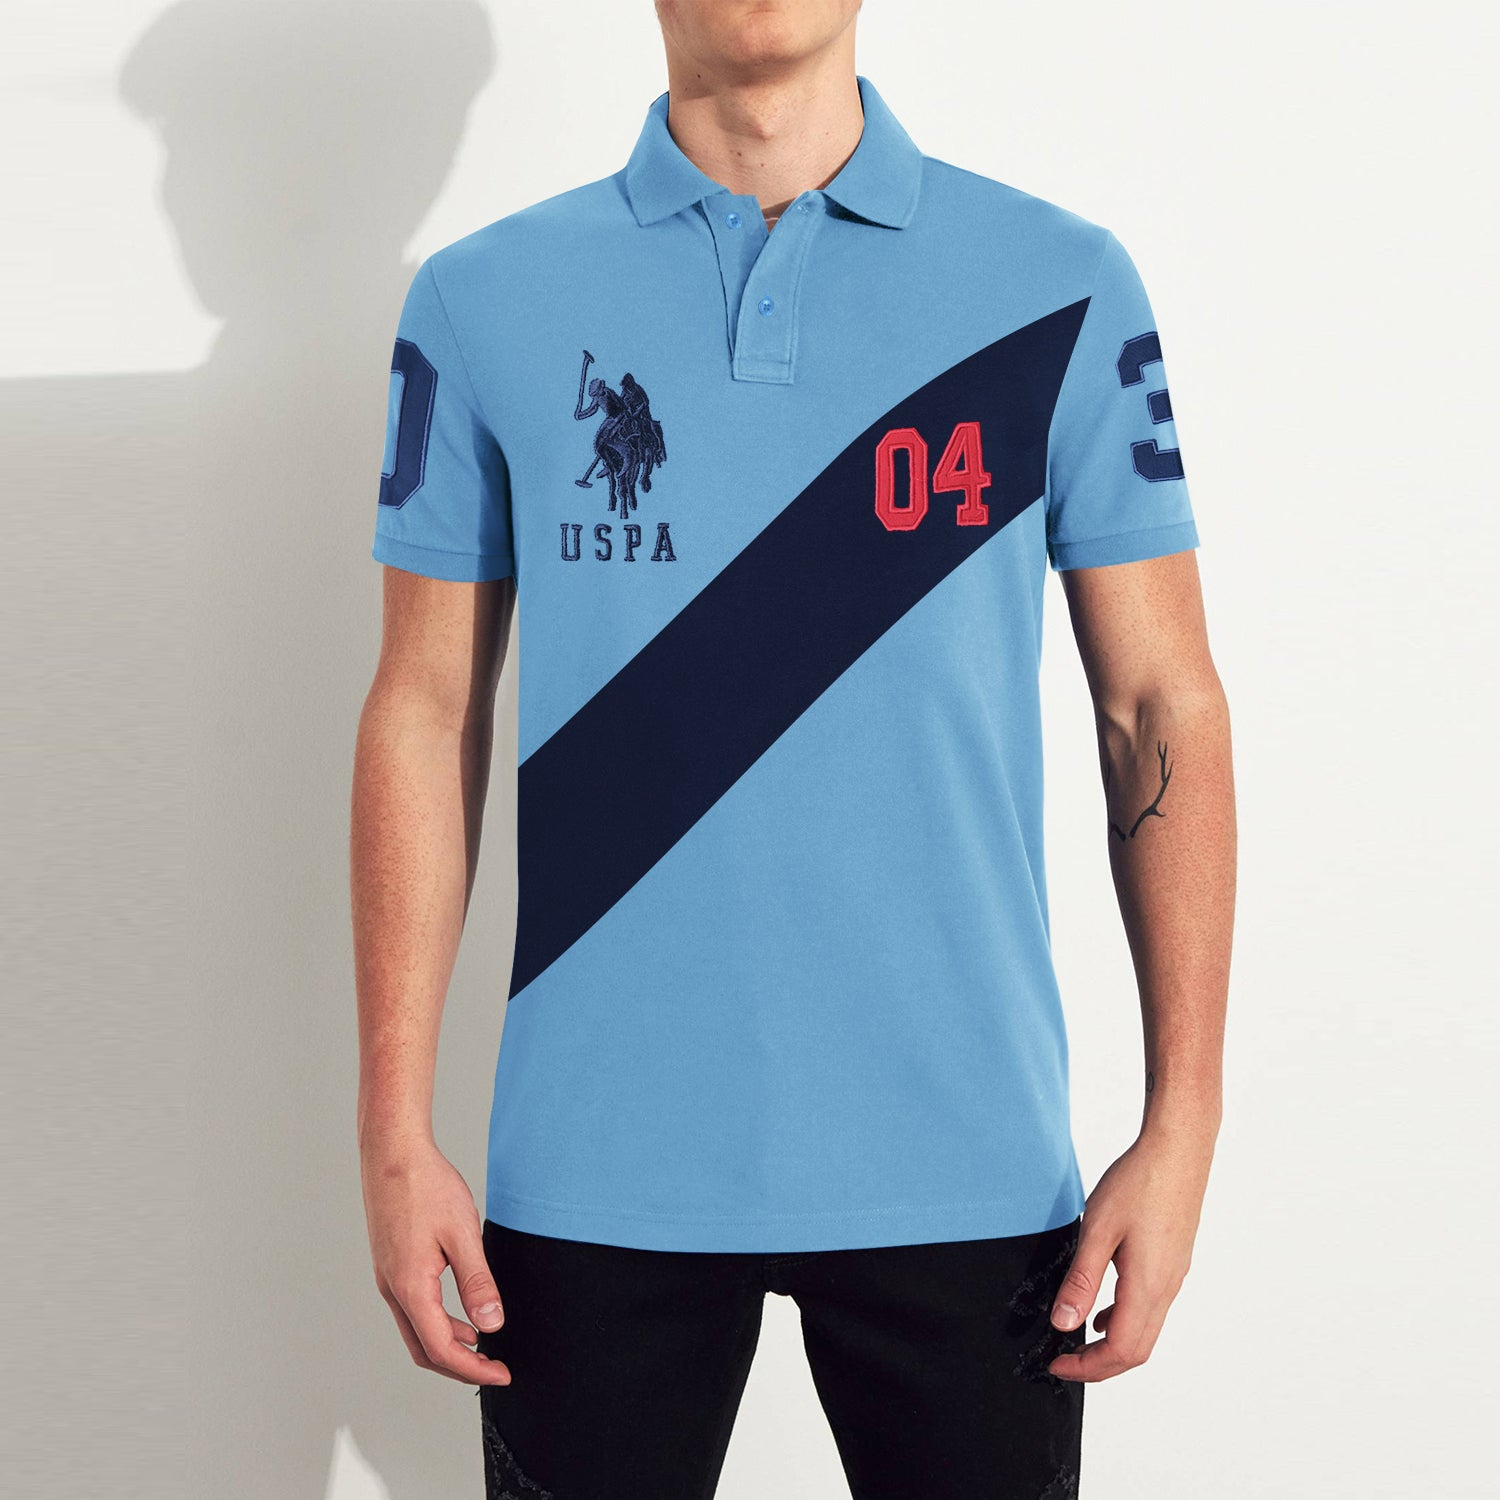 US Polo Muscle Fit Stylish Fashion Shirt For Men-Light Blue With Navy Panel-BE11872